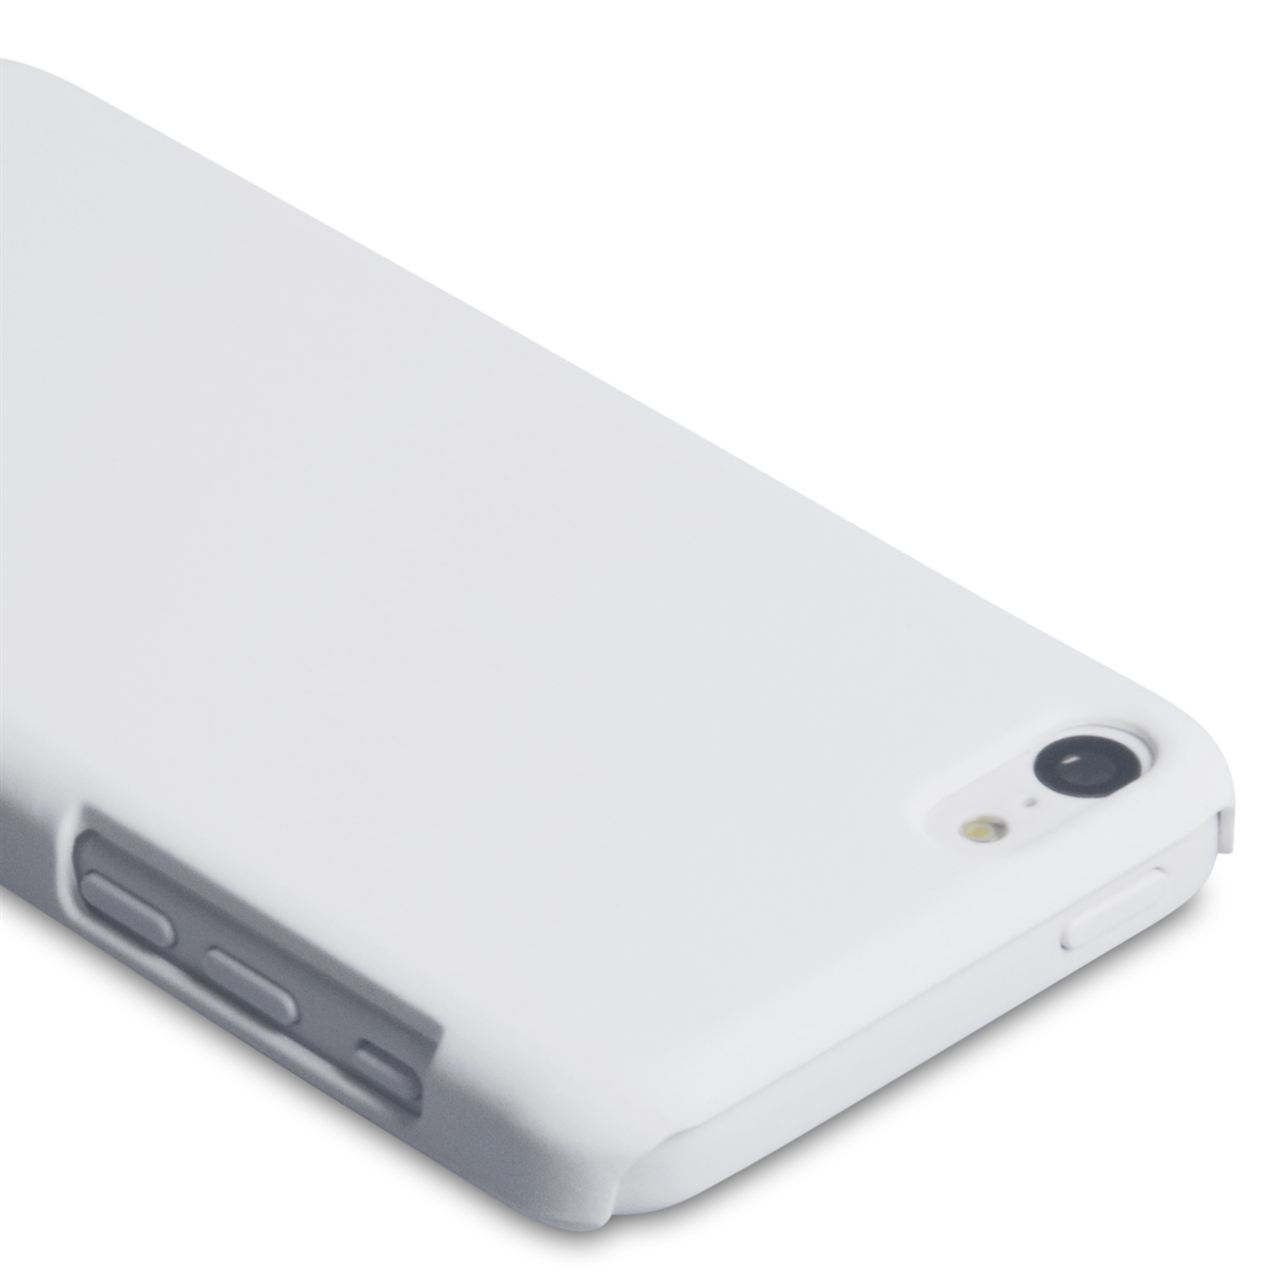 YouSave Accessories iPhone 5C Hard Hybrid Case - White